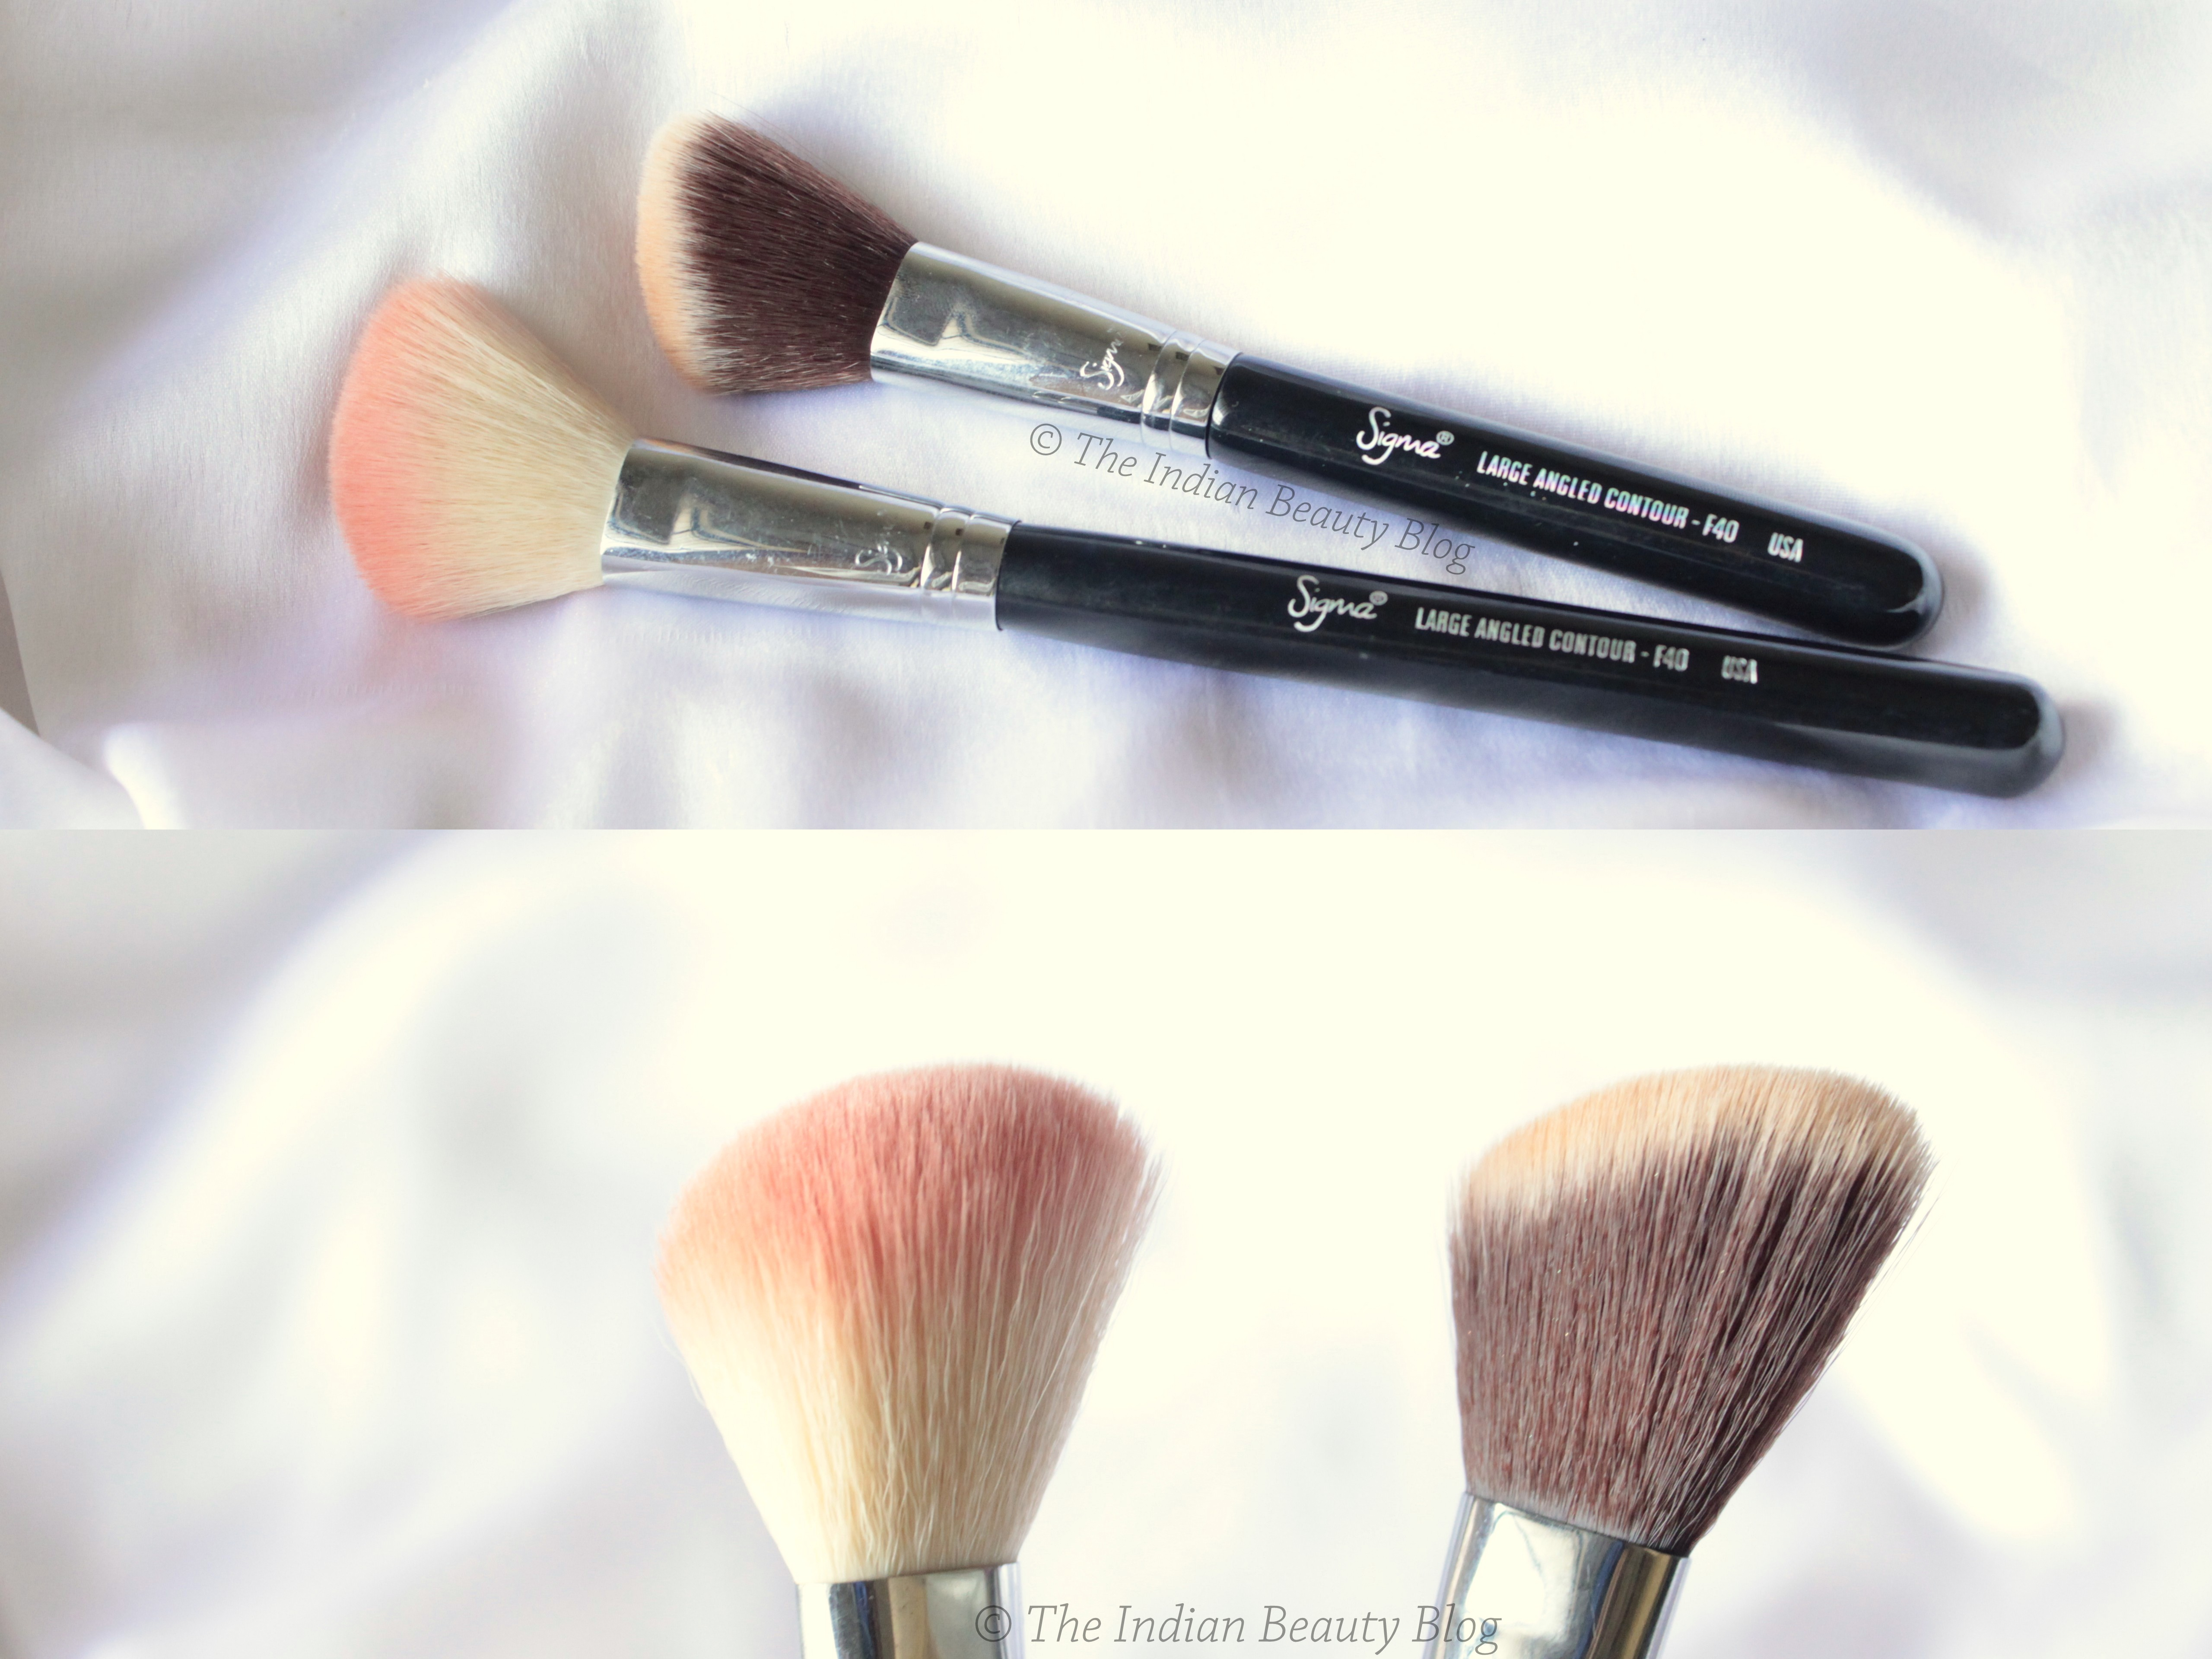 What does a foundation brush look like